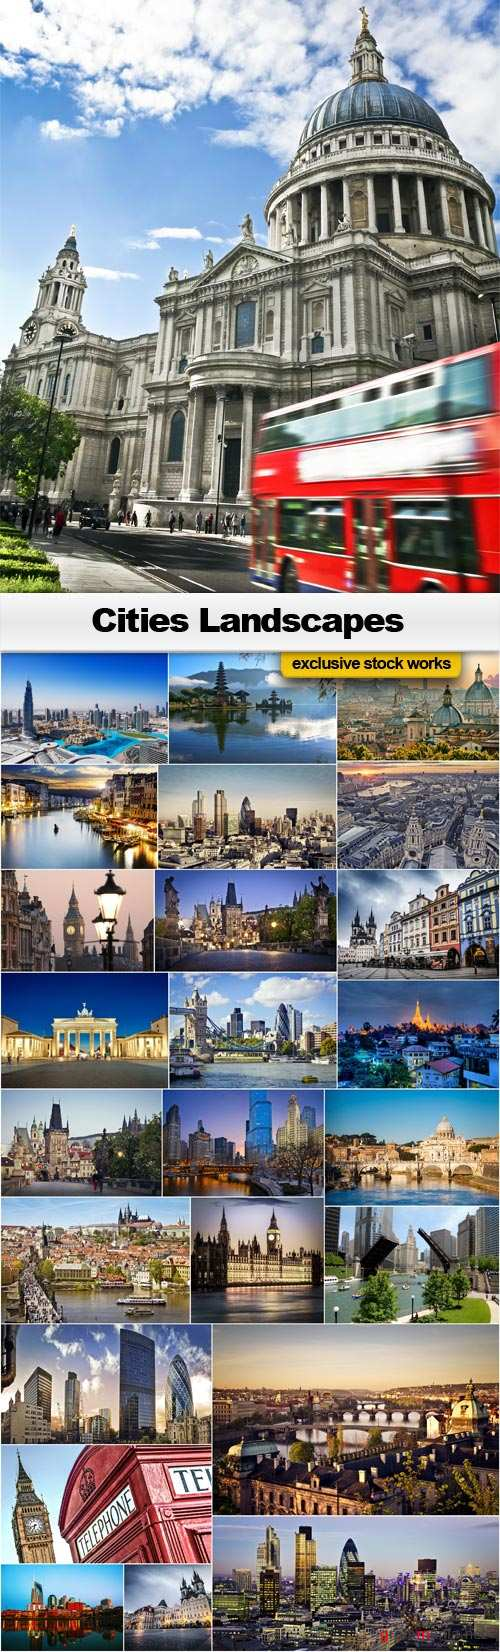 Cities Landscapes